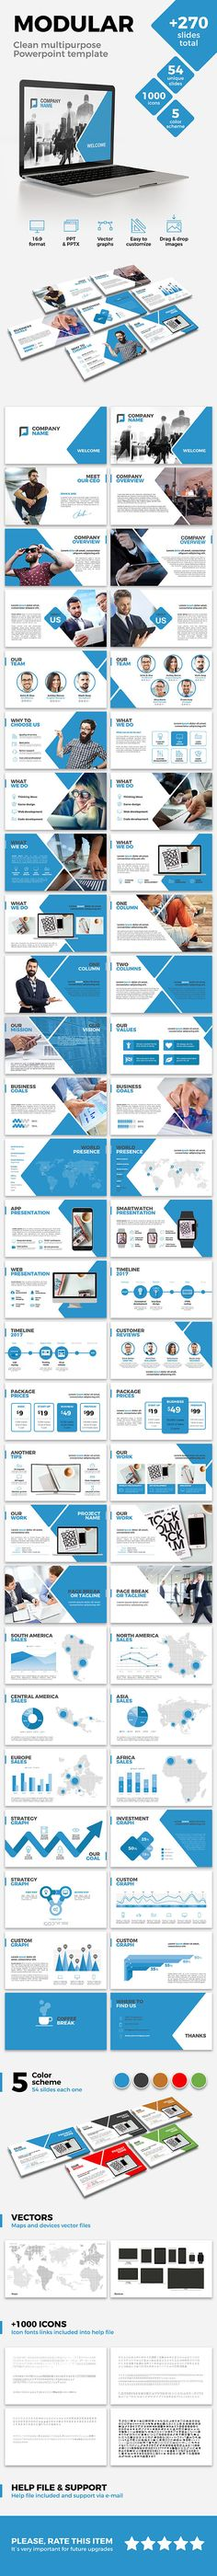 Nex - Powerpoint Template | Business Powerpoint Templates And